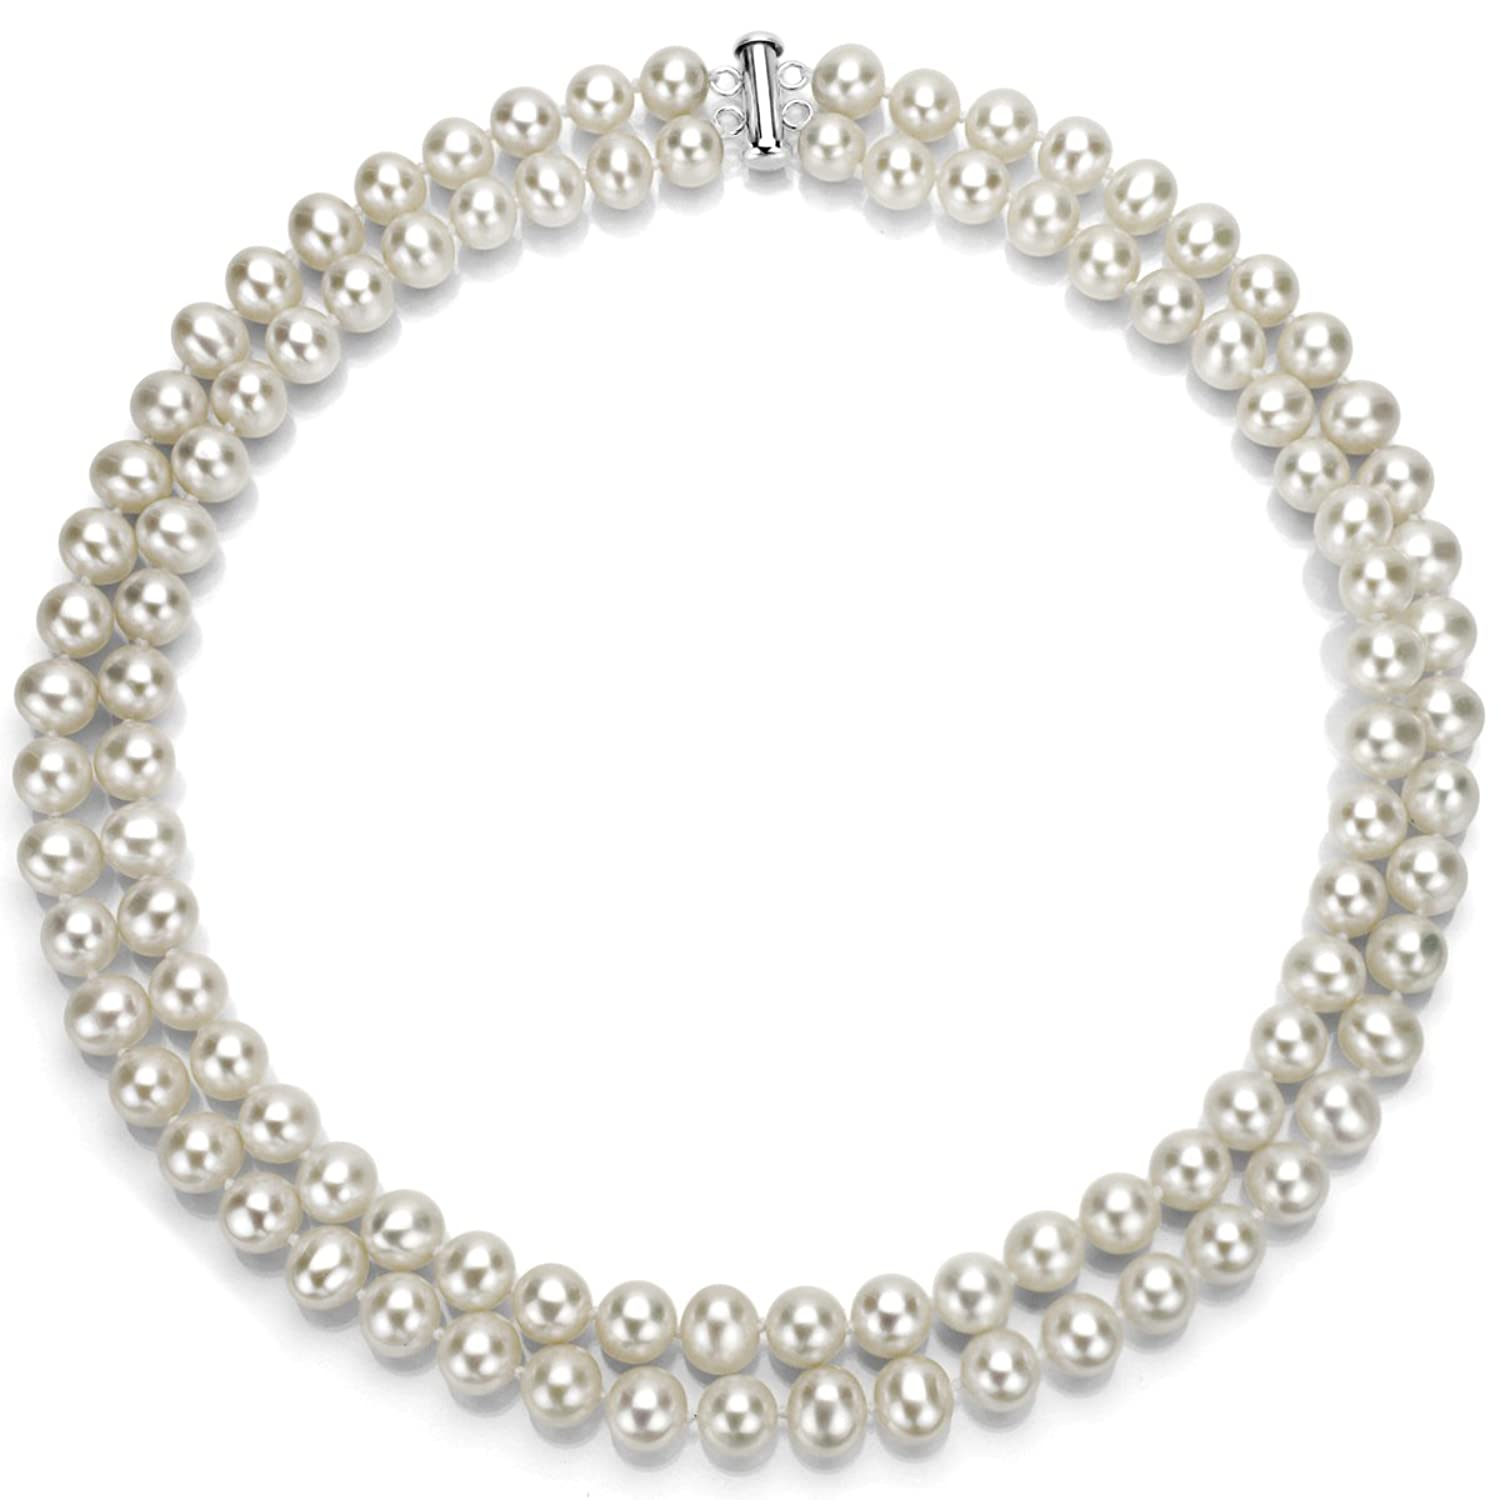 Sterling Silver 2-rows White Freshwater Cultured High Luster Pearl Necklace, 17""